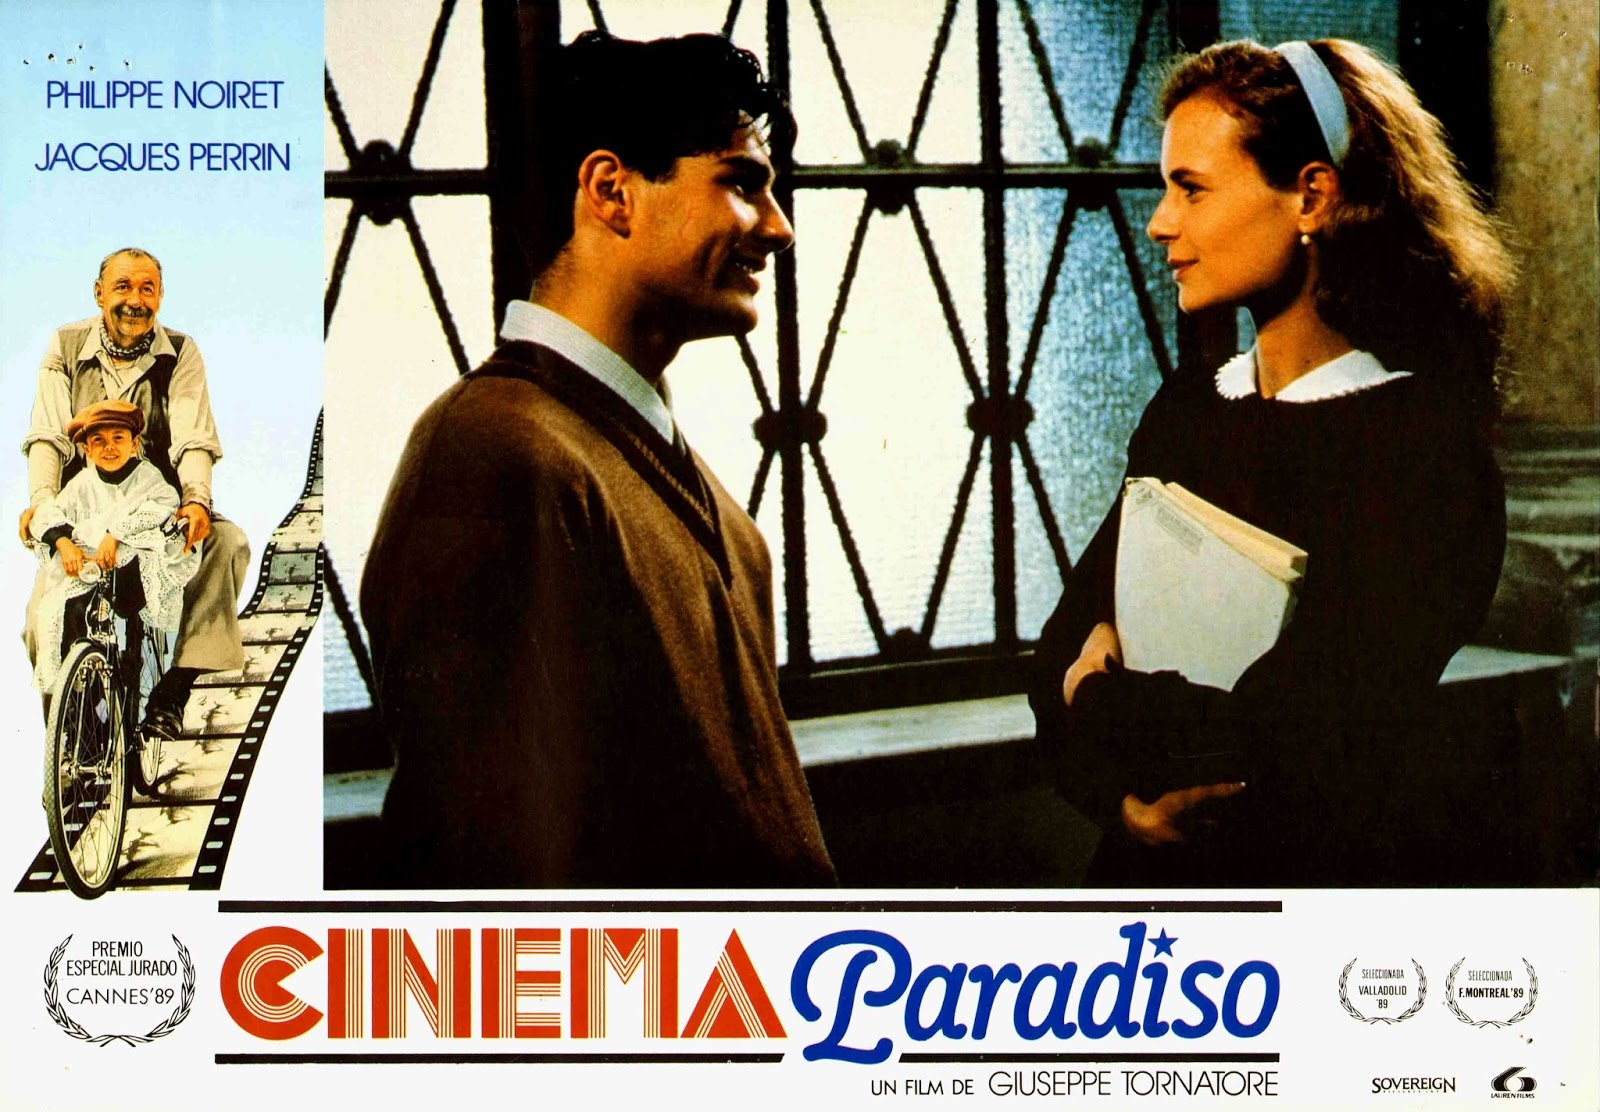 a plot analysis of the film cinema paradiso by giuseppe tornatore Cinema paradiso offers a nostalgic look at films and the effect they have on a young boy who grows up in and around the title village movie theater in this italian comedy drama that is based on the life and times of screenwriter/director giuseppe tornatore.